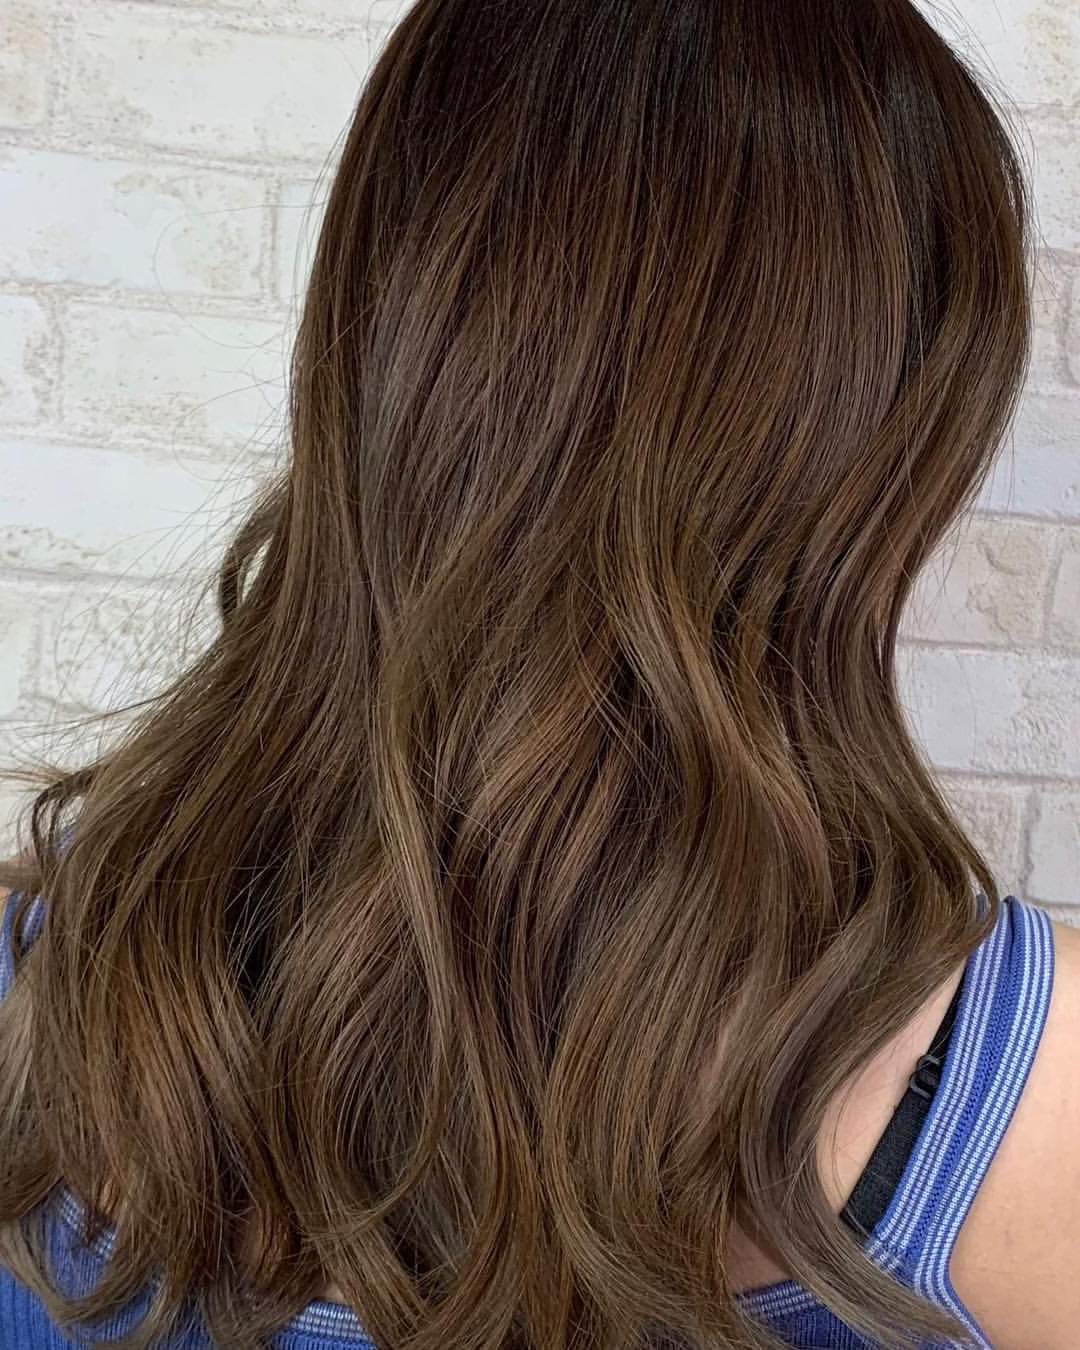 Newest Shiny Tousled Curls Hairstyles Inside Guytangmydentity #hairbesties #metallics #reflective #shiny (View 11 of 20)